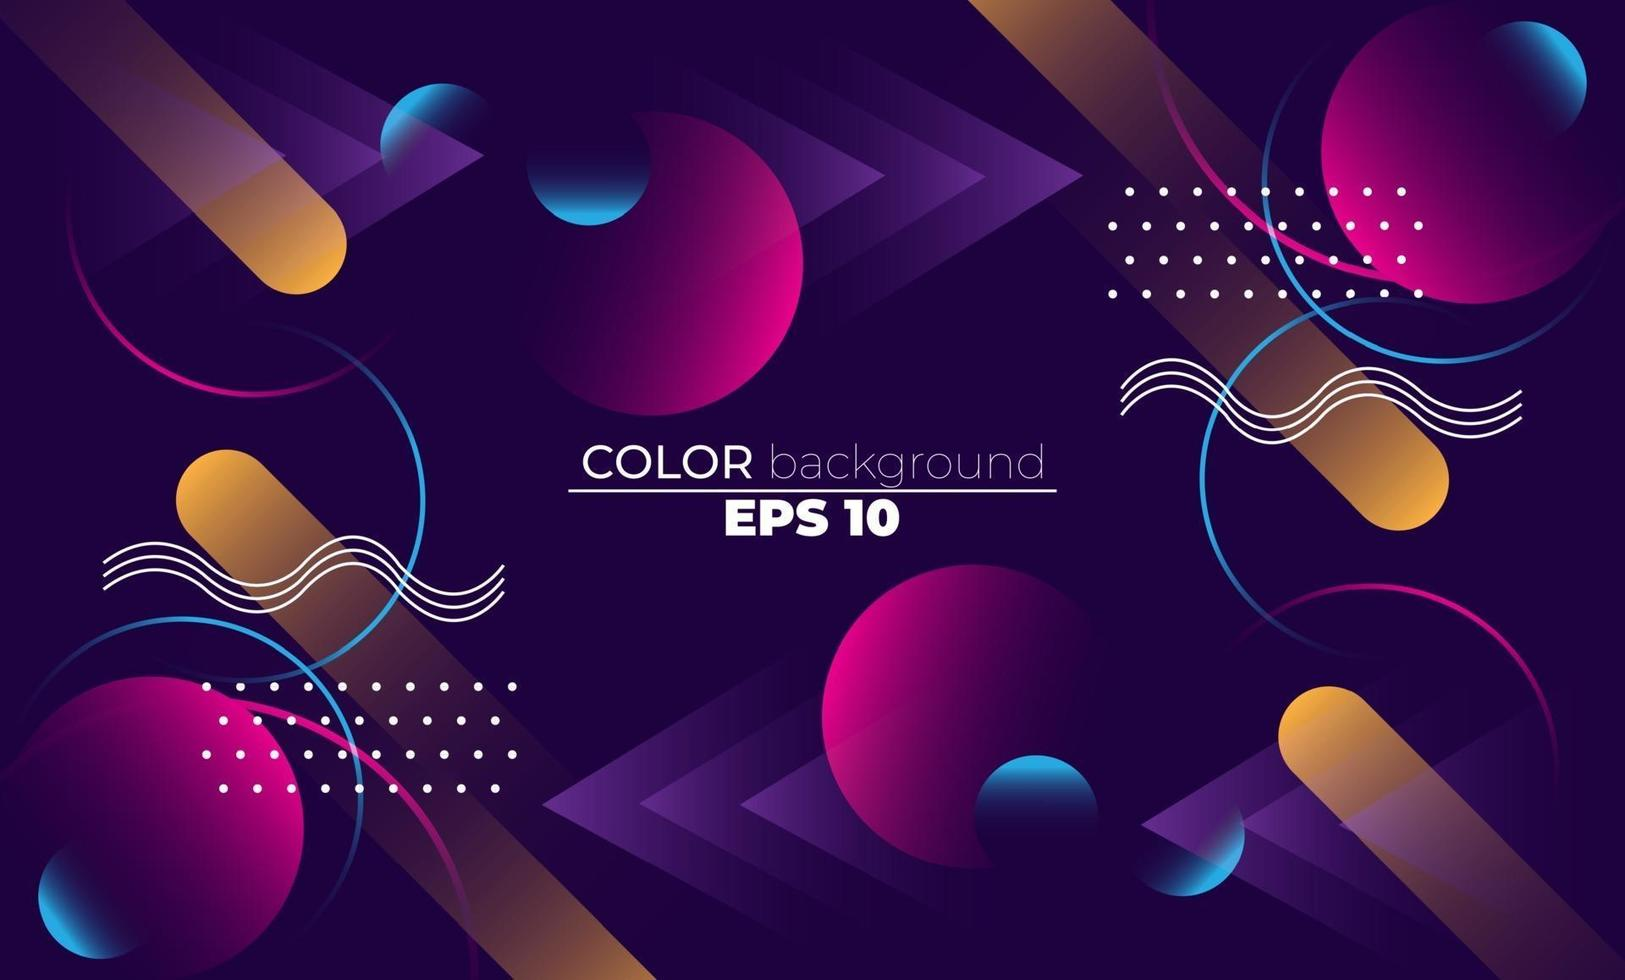 Colorful geometric background with gradient motion shapes composition. Applicable for gift card,  Poster on wall poster template,  landing page, ui, ux ,coverbook,  baner, social media posted, vector